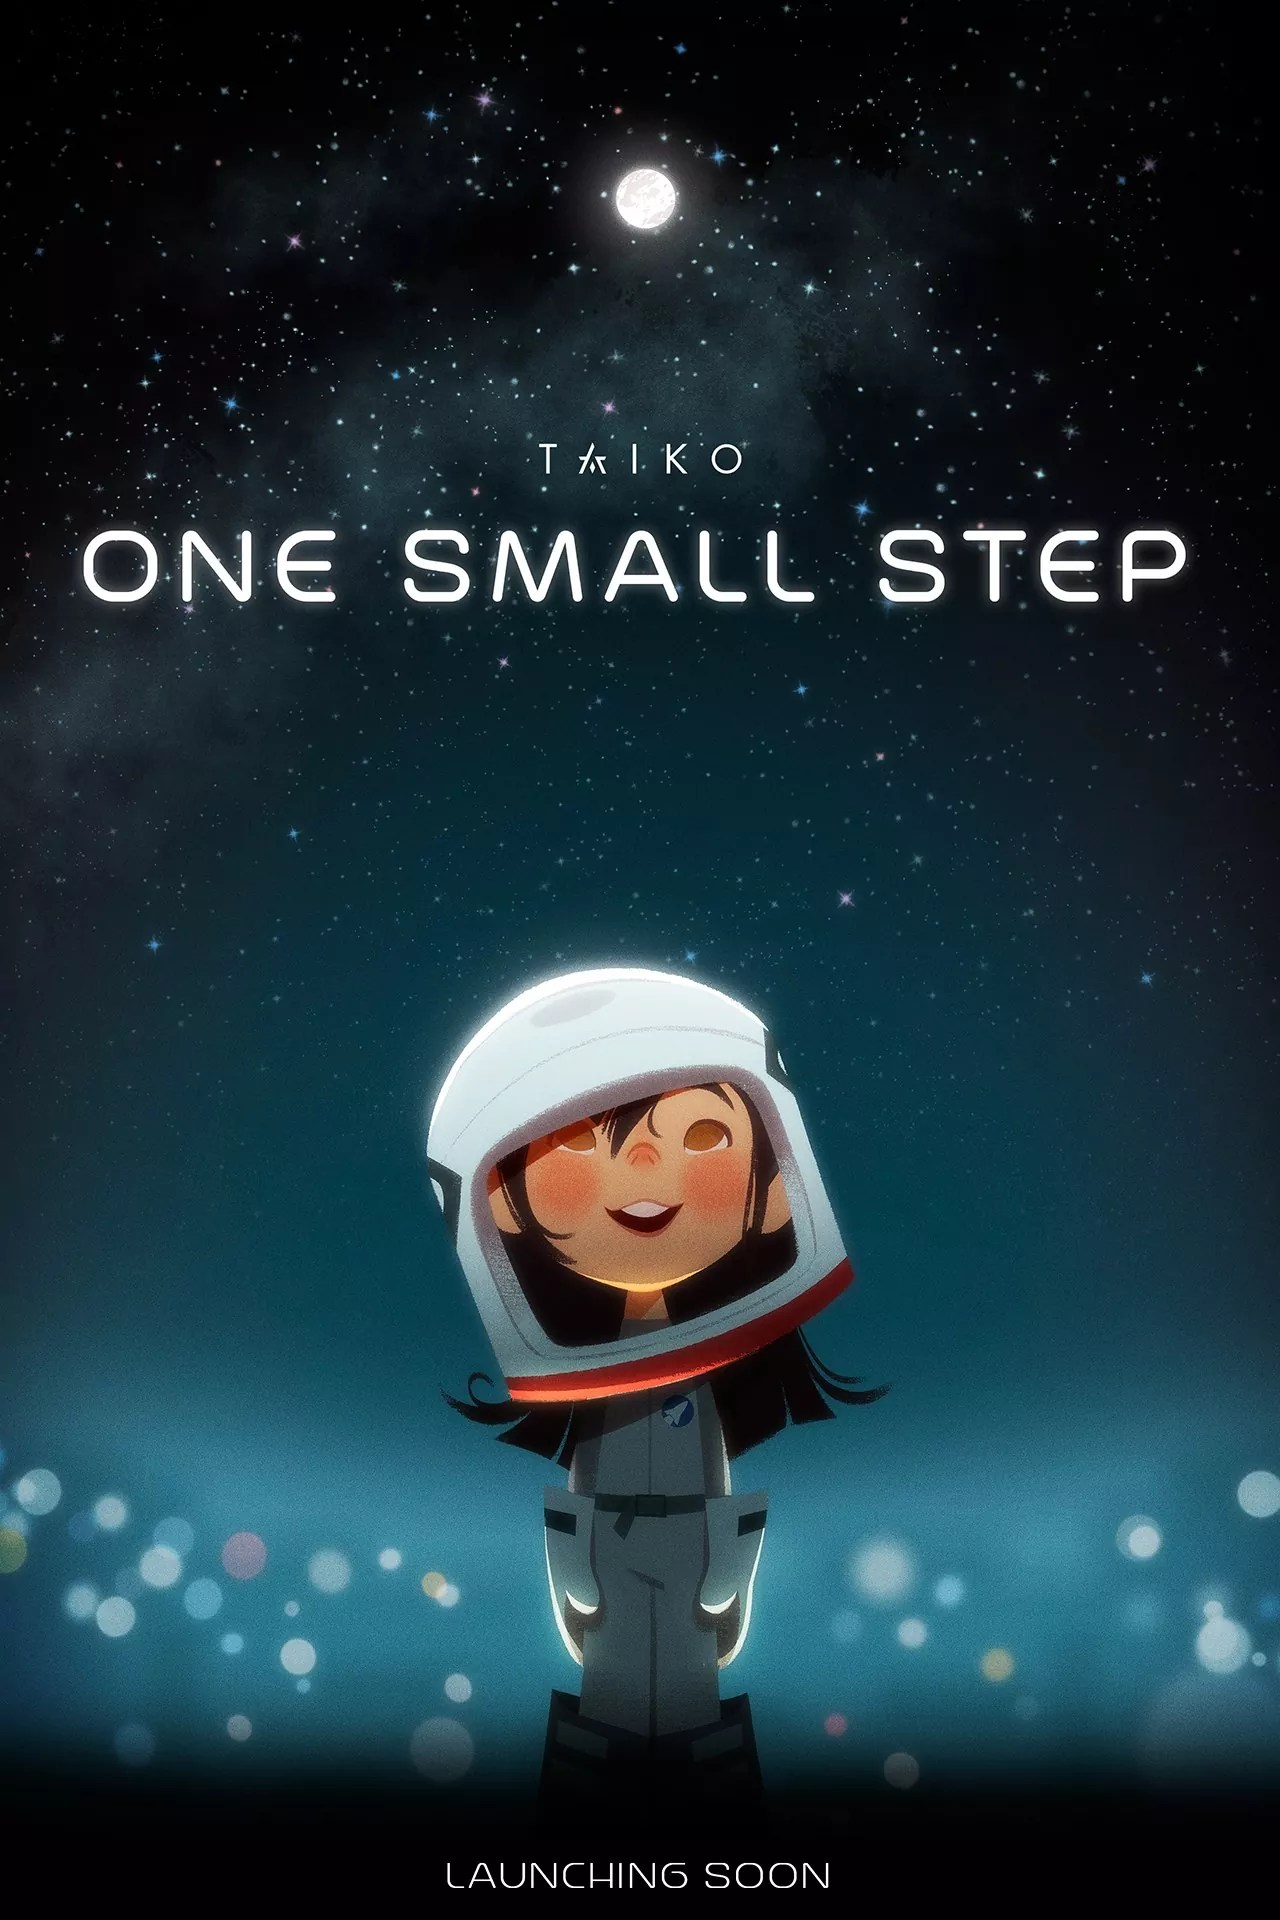 TAIKO Studios announces first project One Small Step  Rotoscopers